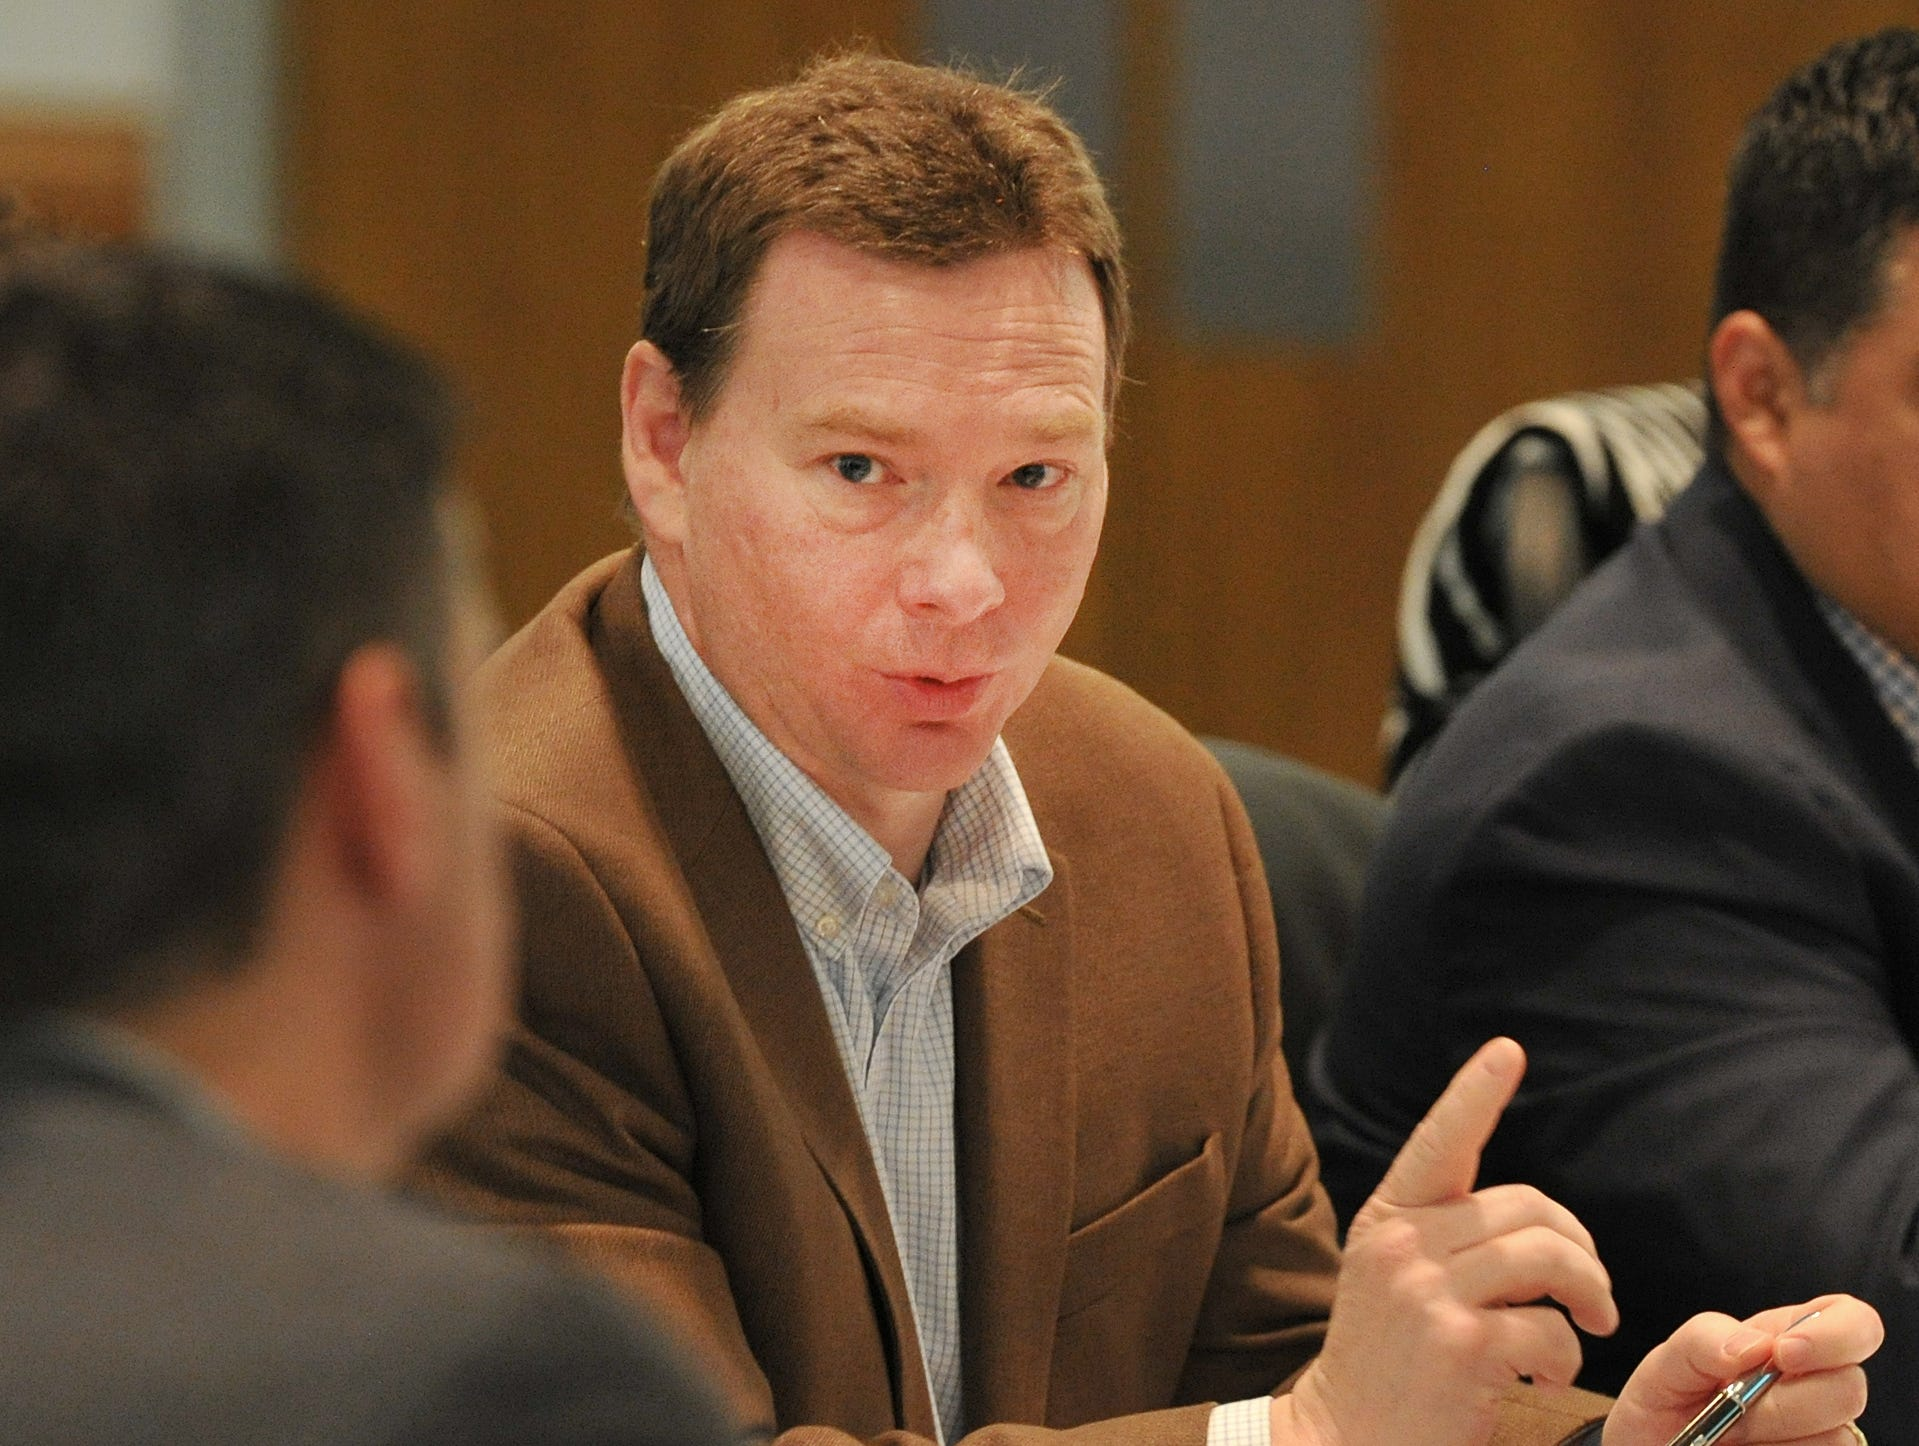 Wichita Falls City Manager, Darron Leiker spoke during city planning meeting held at the MPEC, Tuesday morning.